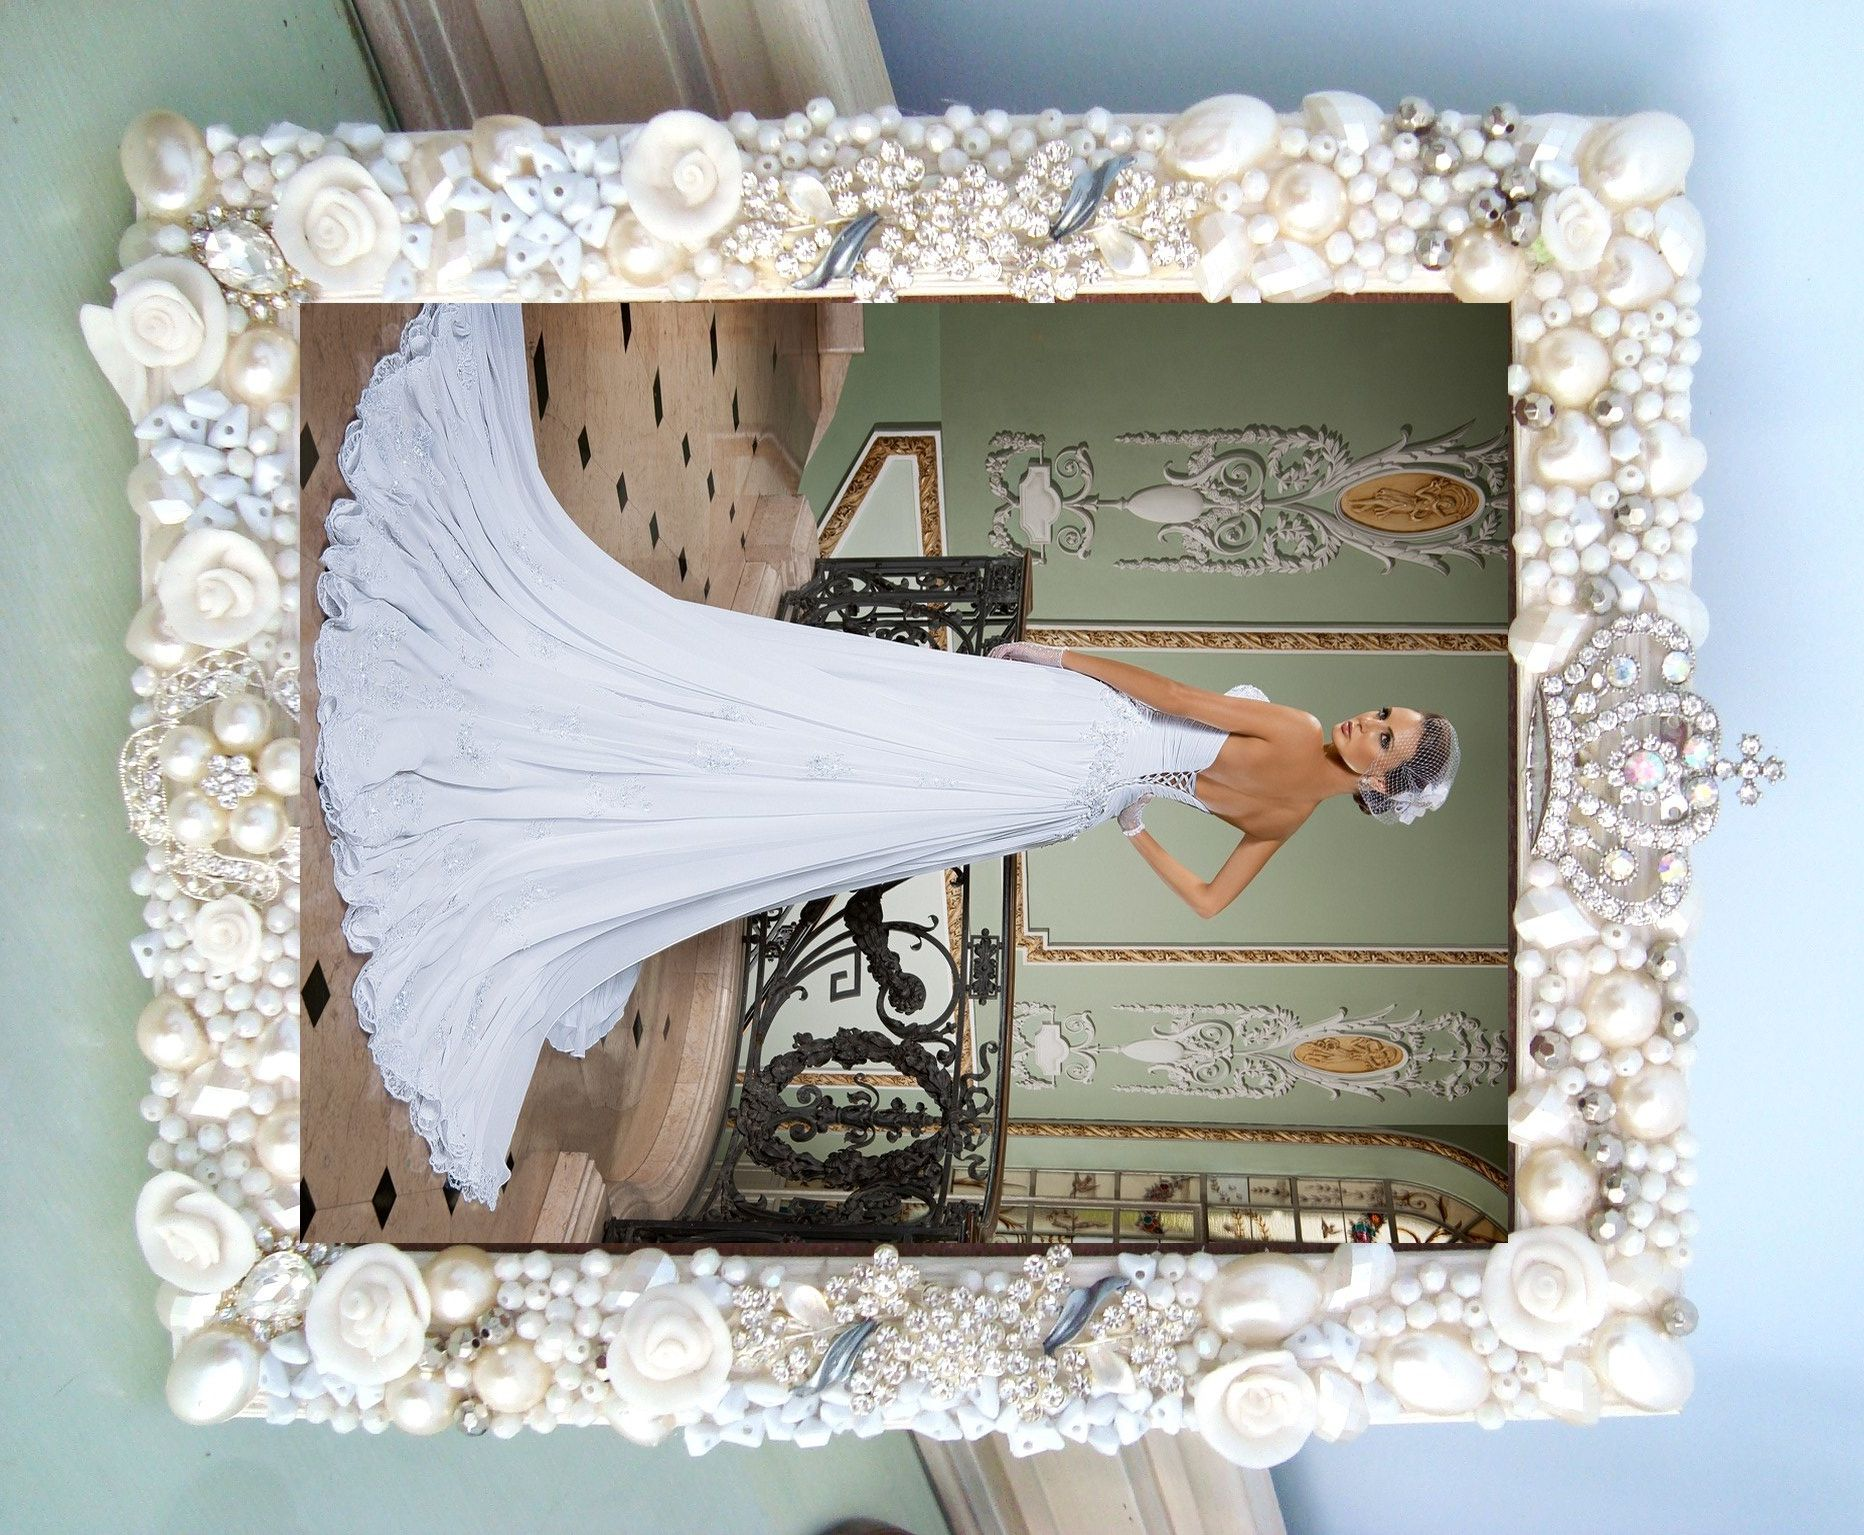 Vintage rhinestone jewelry art framed,Frame,Porta retrato em Pedrarias, jeweled frame, joias,bijuterias, jewellery ,enfeite de mesa;festas,Jewelry Frame, Sparkle Vintage, Victorian ,Shabby Chic, Pink ,Frame ,Jewels, From The Collection,antique,mirror, Bejeweled, Rhinestone,brooches